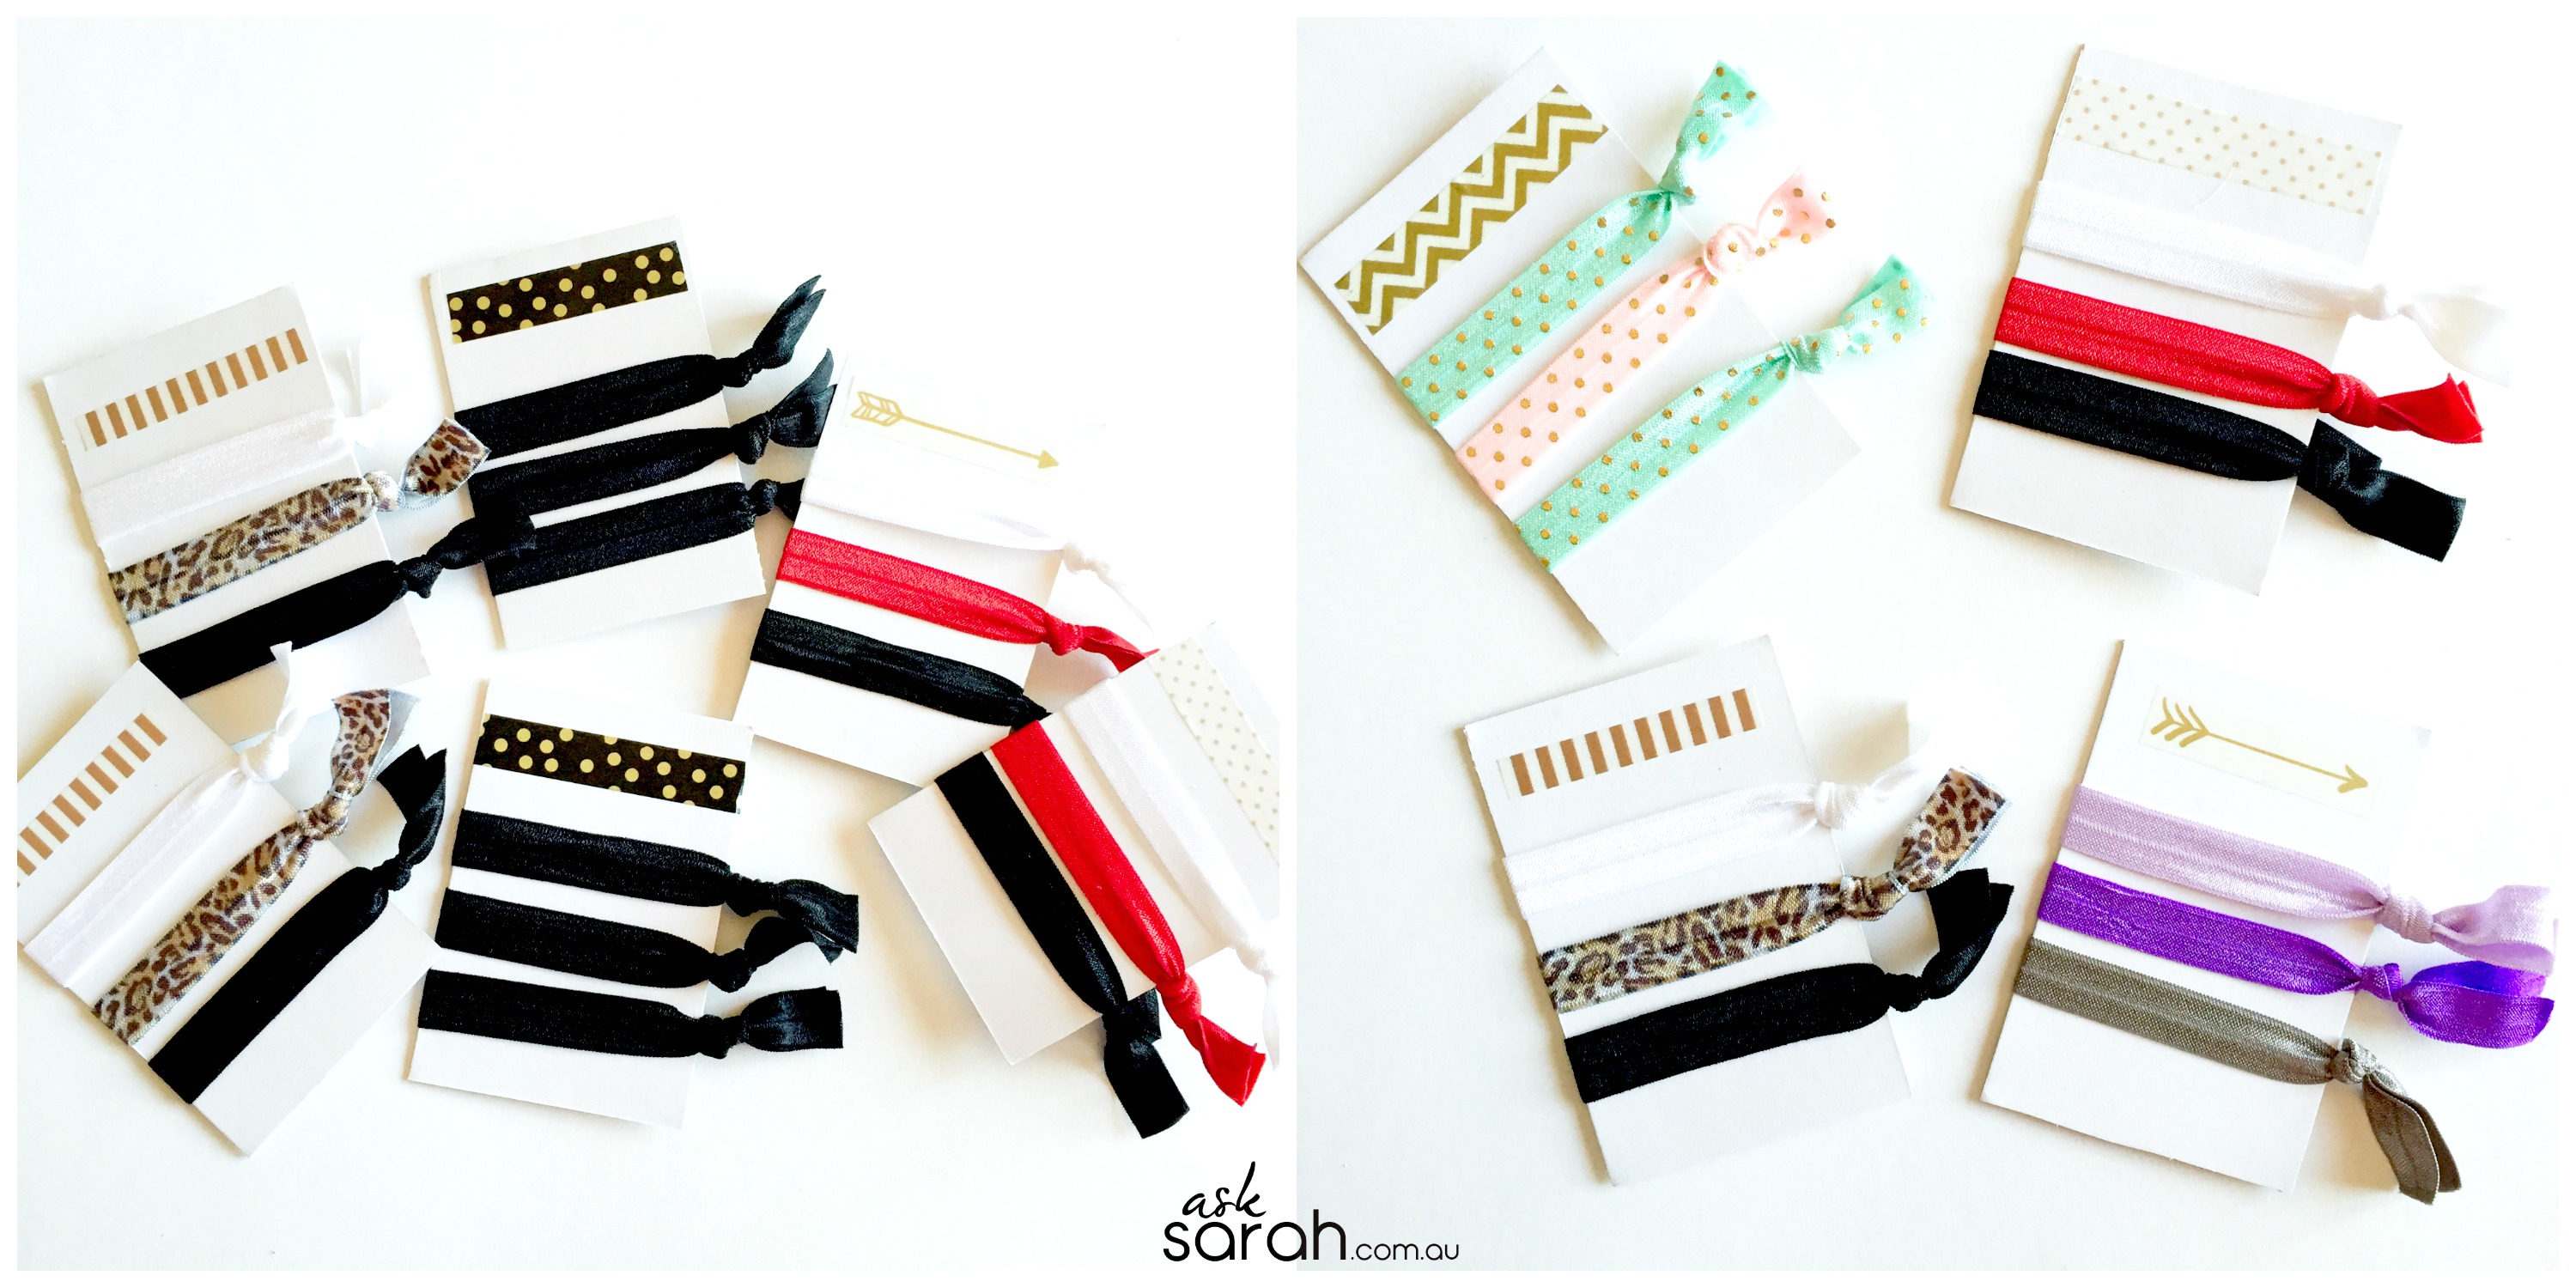 Craft: DIY Creaseless Hair Tie Elastics {Super Quick & Easy! Perfect Gift or Stocking Stuffer}